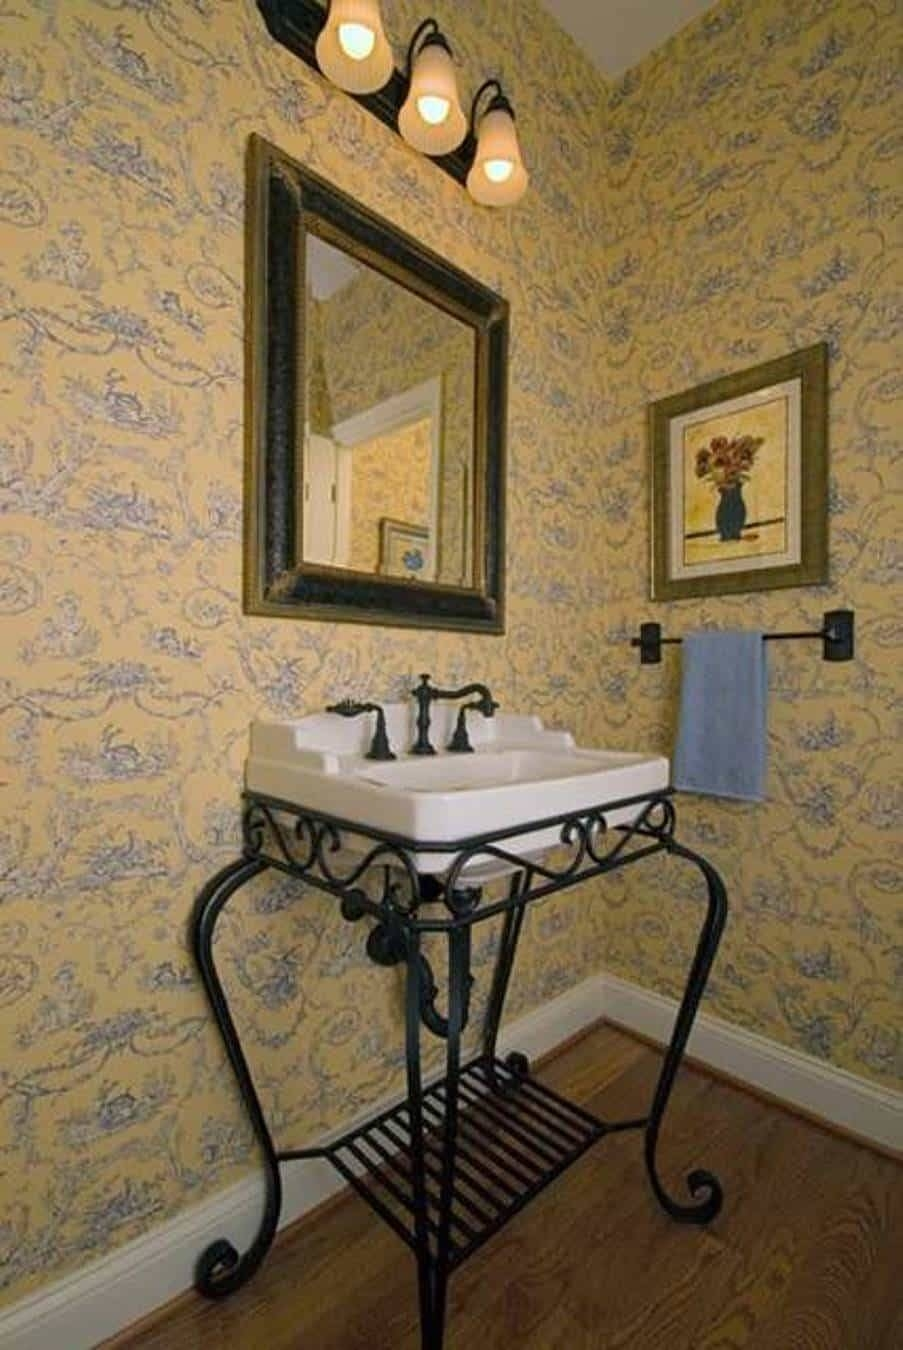 Country French Style Interior Powder Room With Wallpaper And With Regard To Current Country French Wall Art (View 10 of 30)